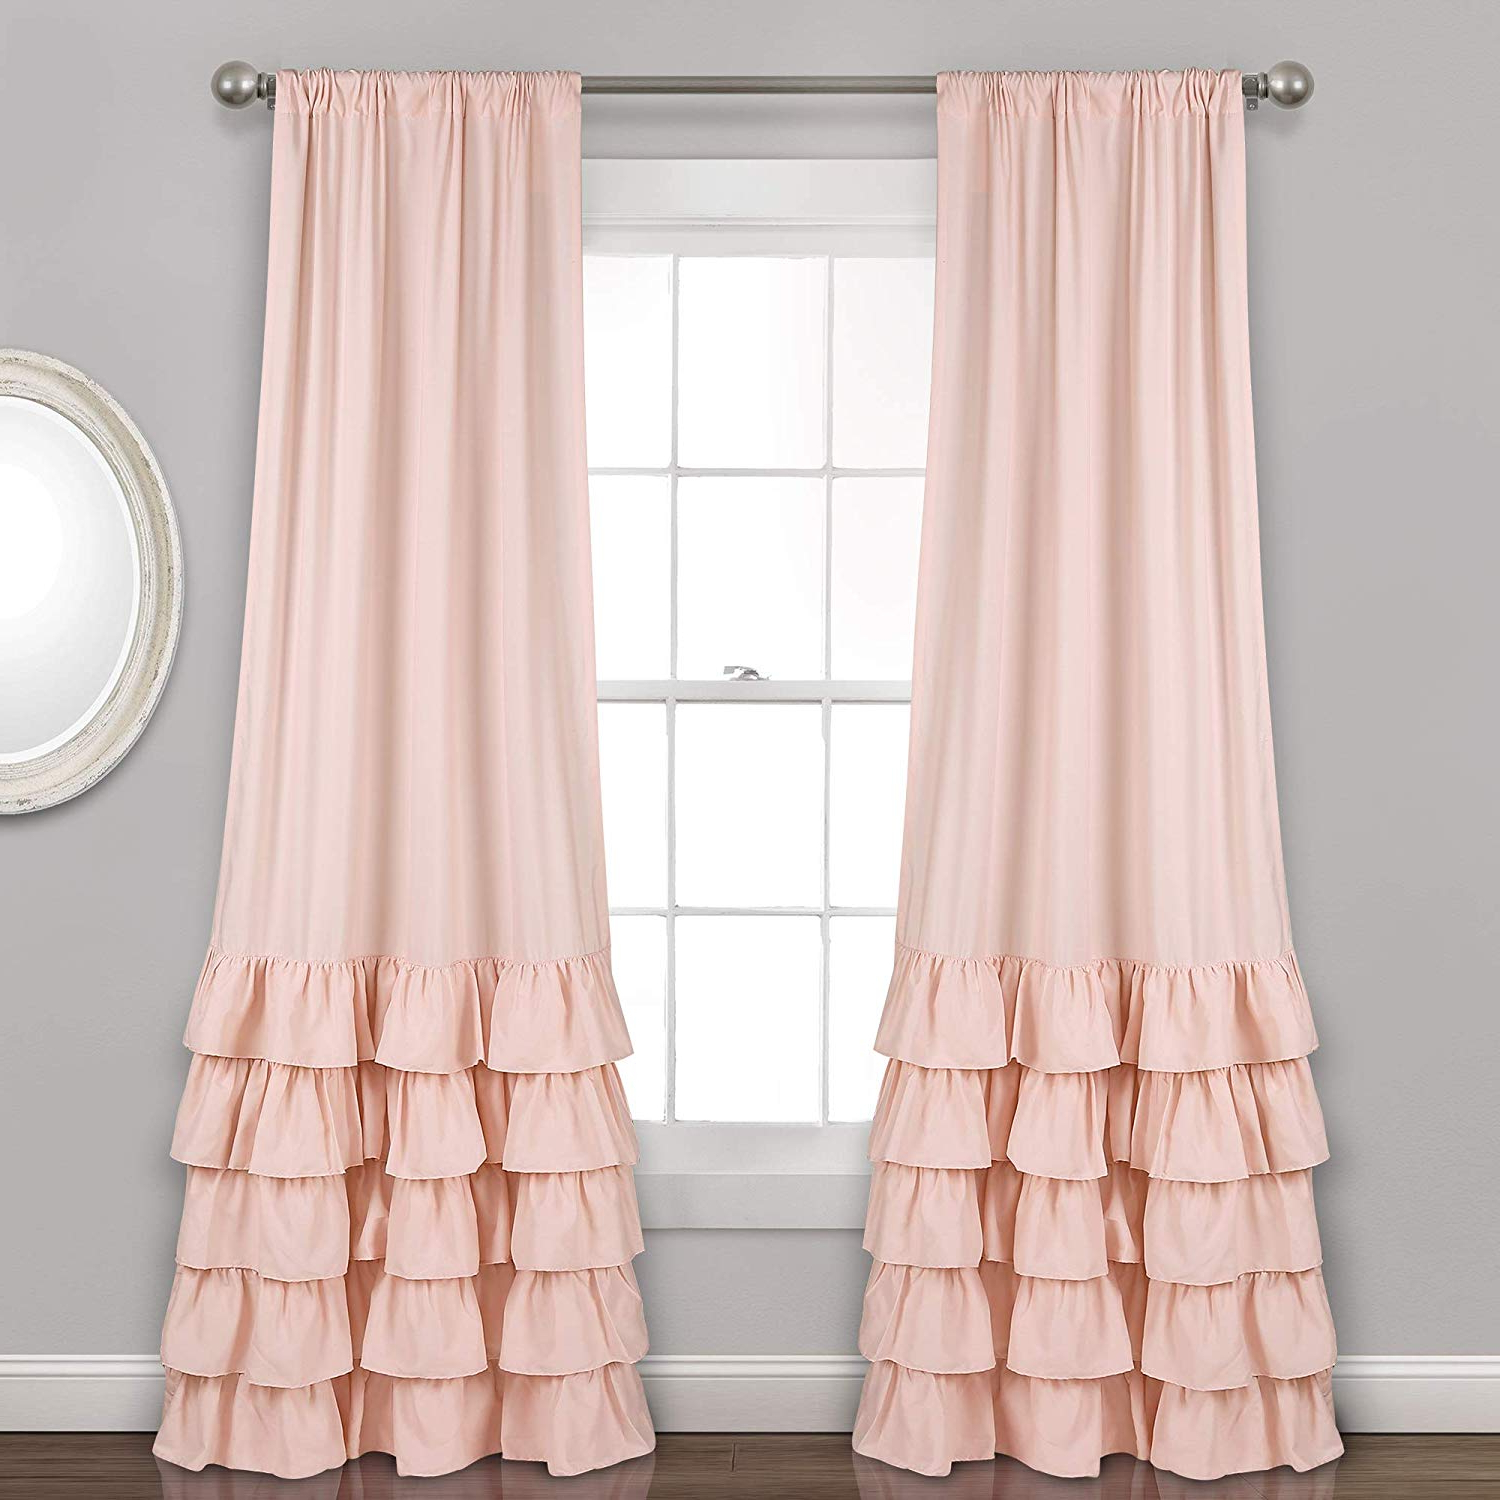 """Ruffle Diamond Curtain Panel Pairs With Regard To Newest Lush Decor Allison Ruffle Curtains Window Panel Set For Living, Dining  Room, Bedroom (Pair), 84"""" X 40"""", Blush (Gallery 13 of 20)"""